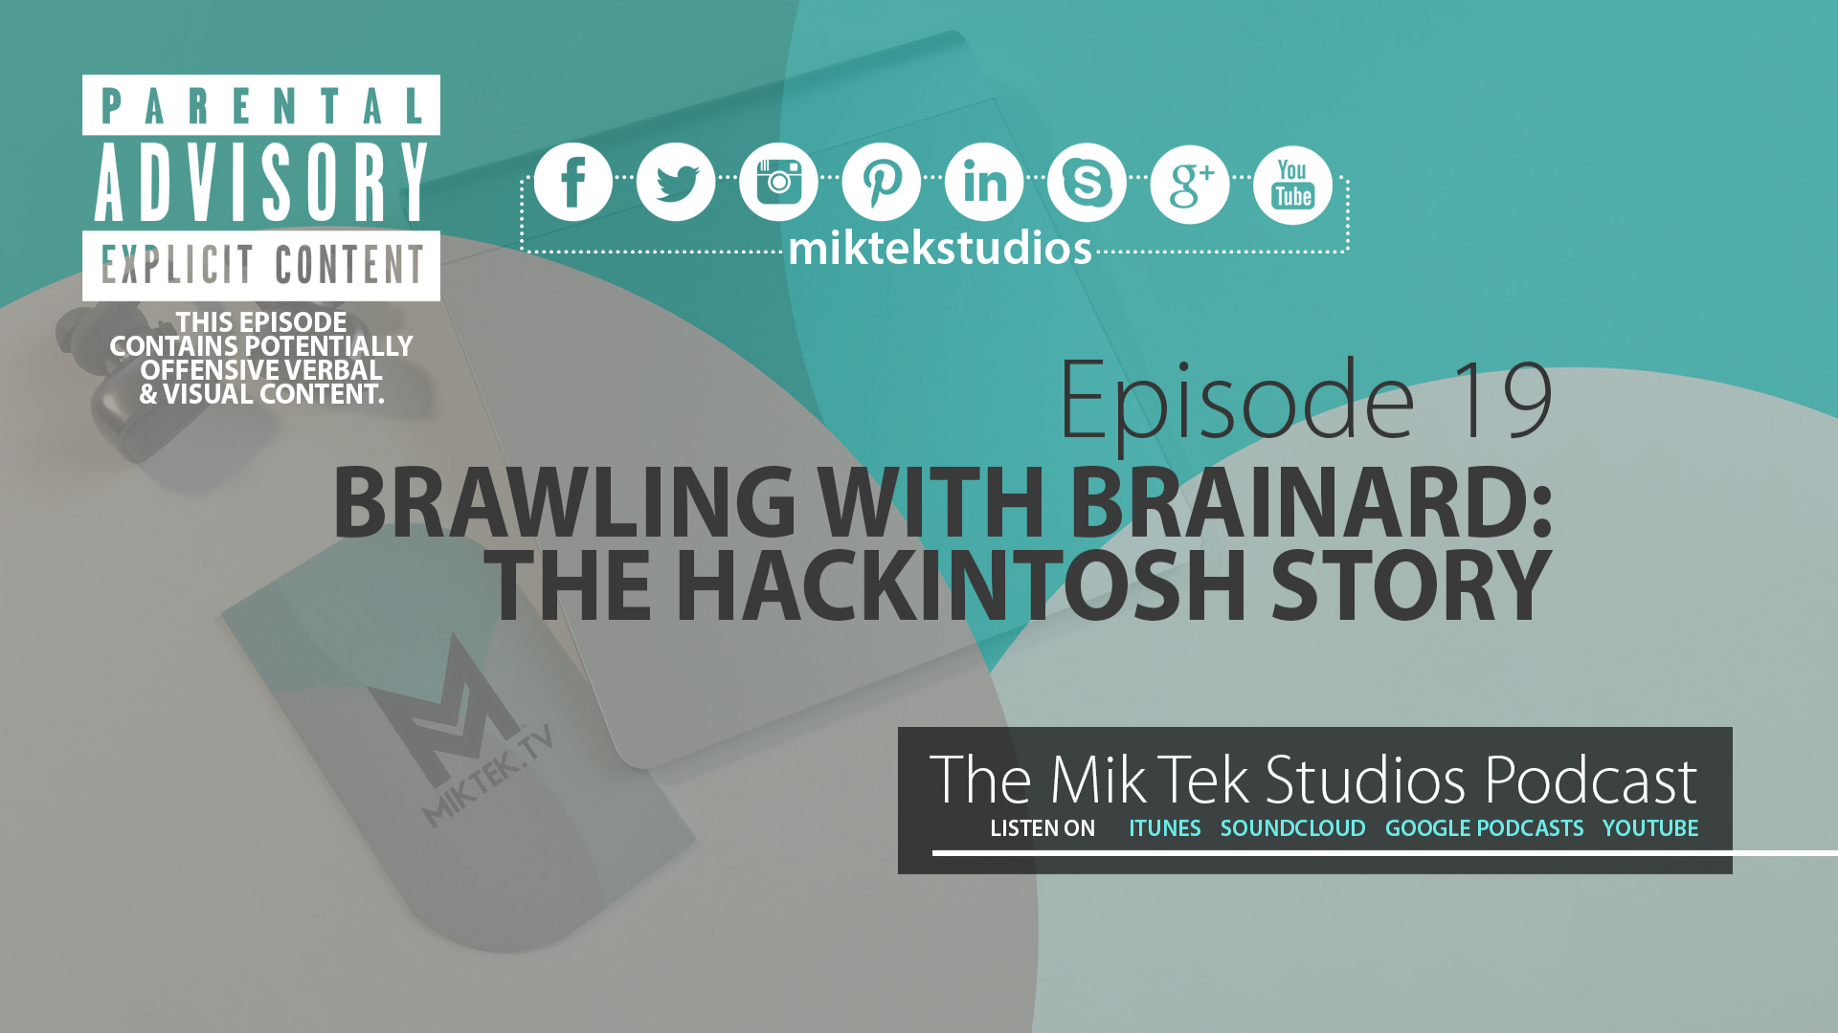 PODCAST] Ep 19: Brawling With Brainard :The Hackintosh Story